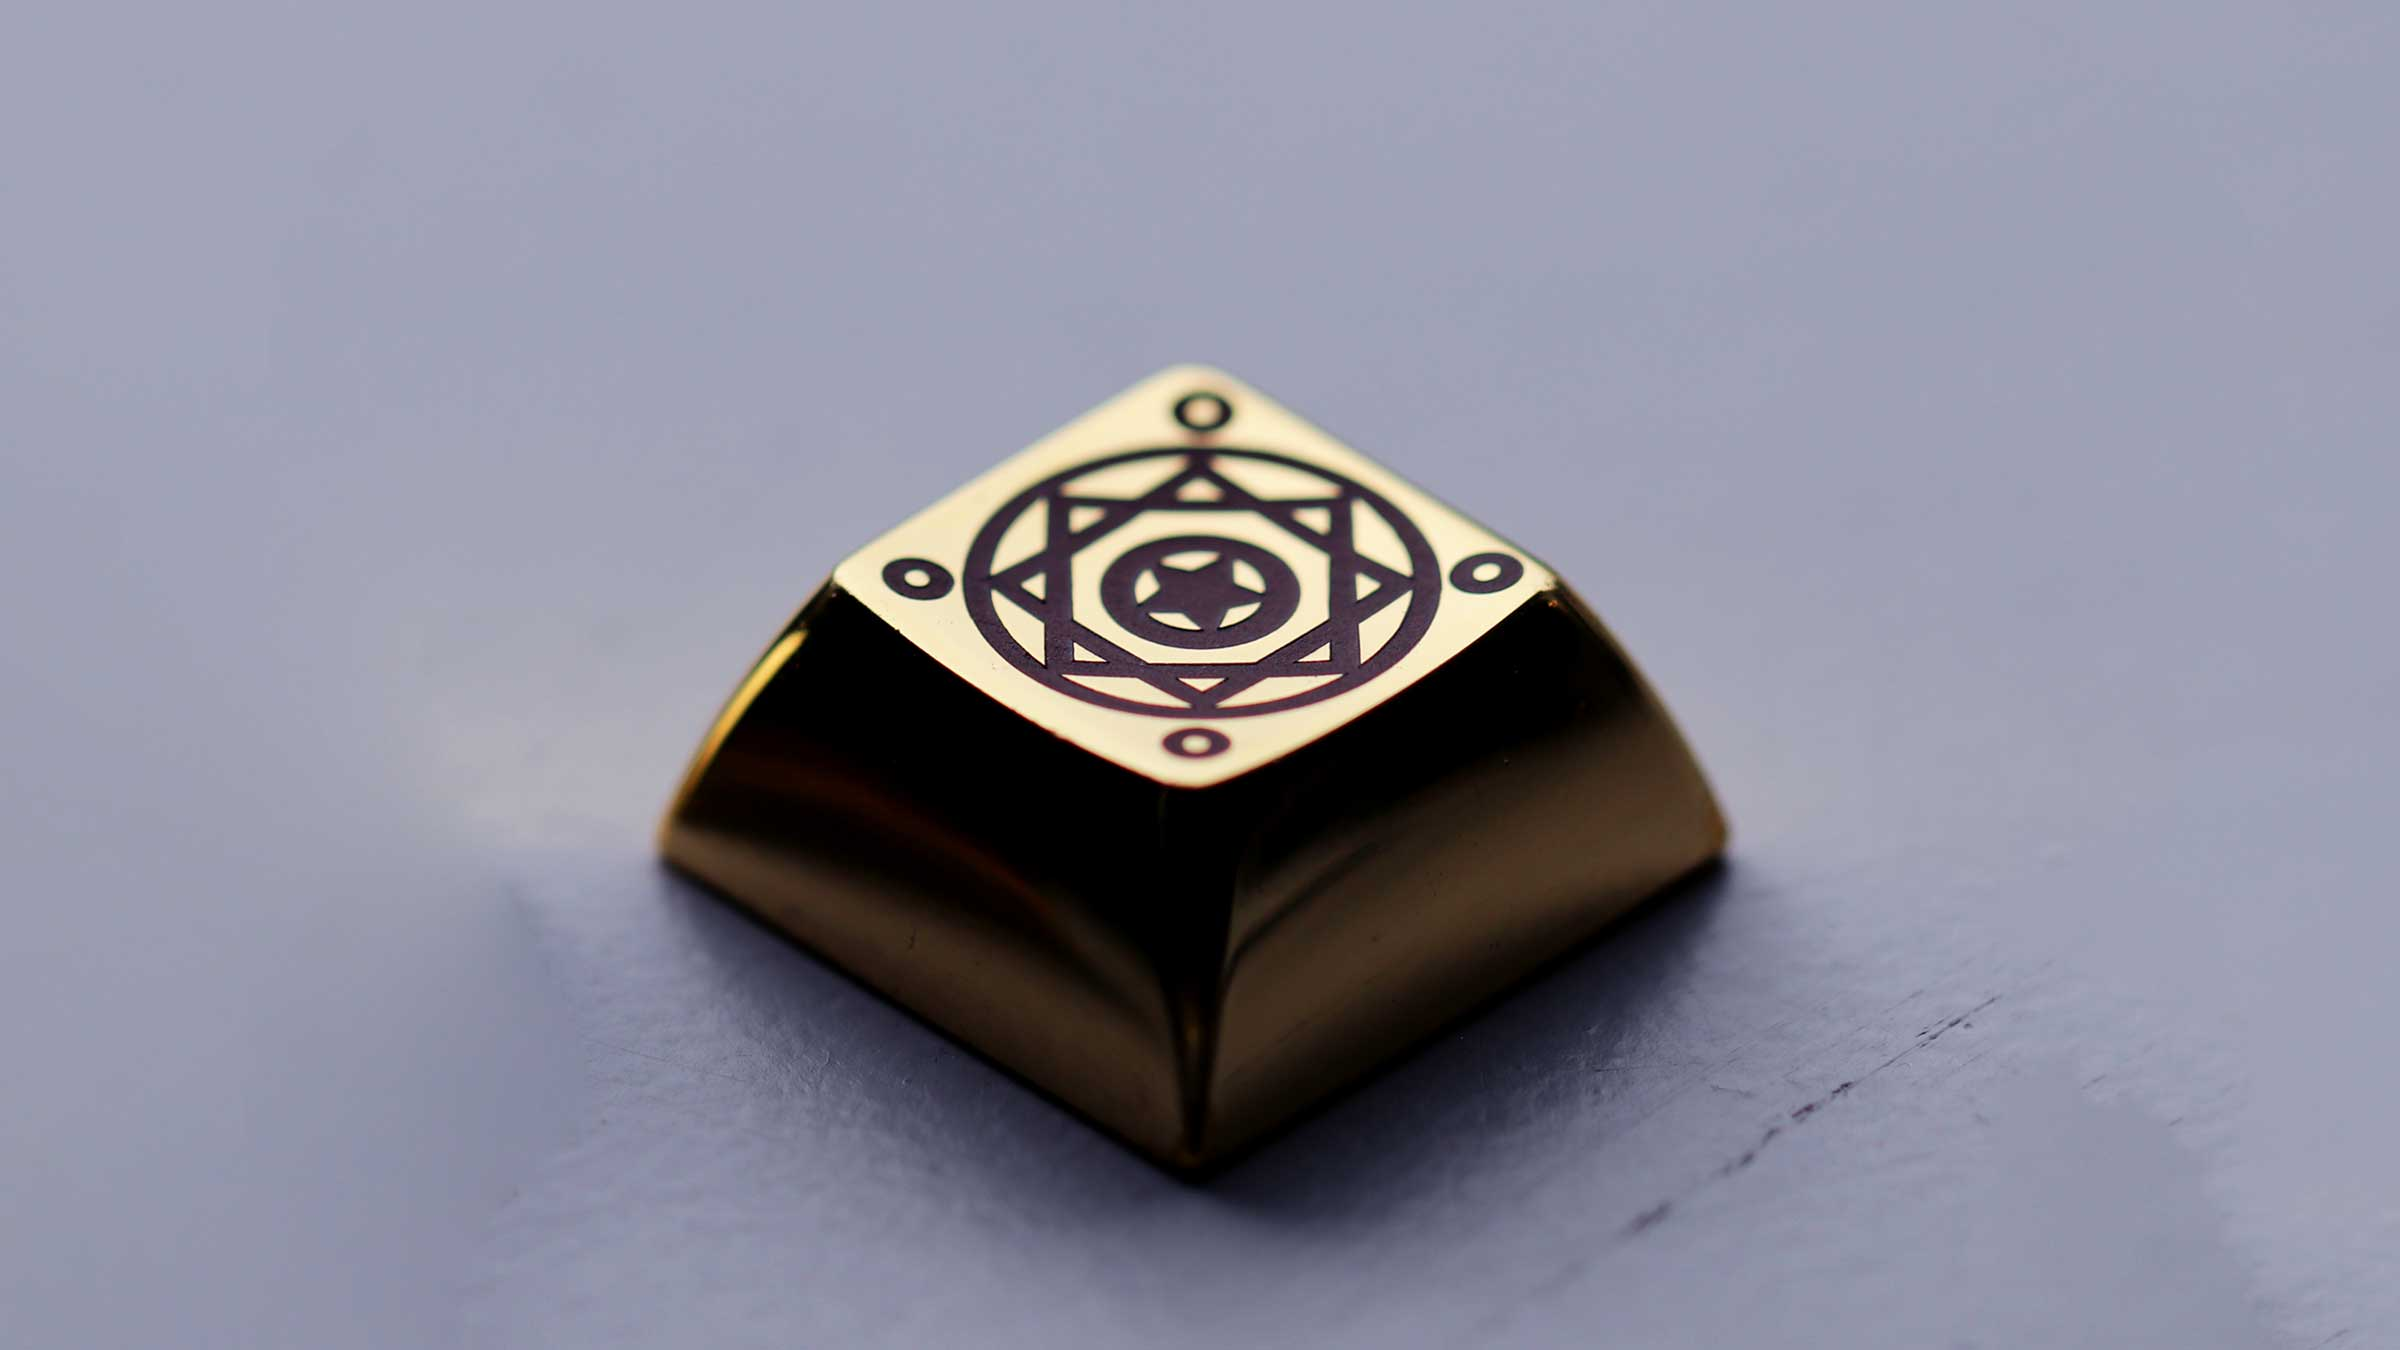 DSA Magic Girl Artisan Brass Keycap